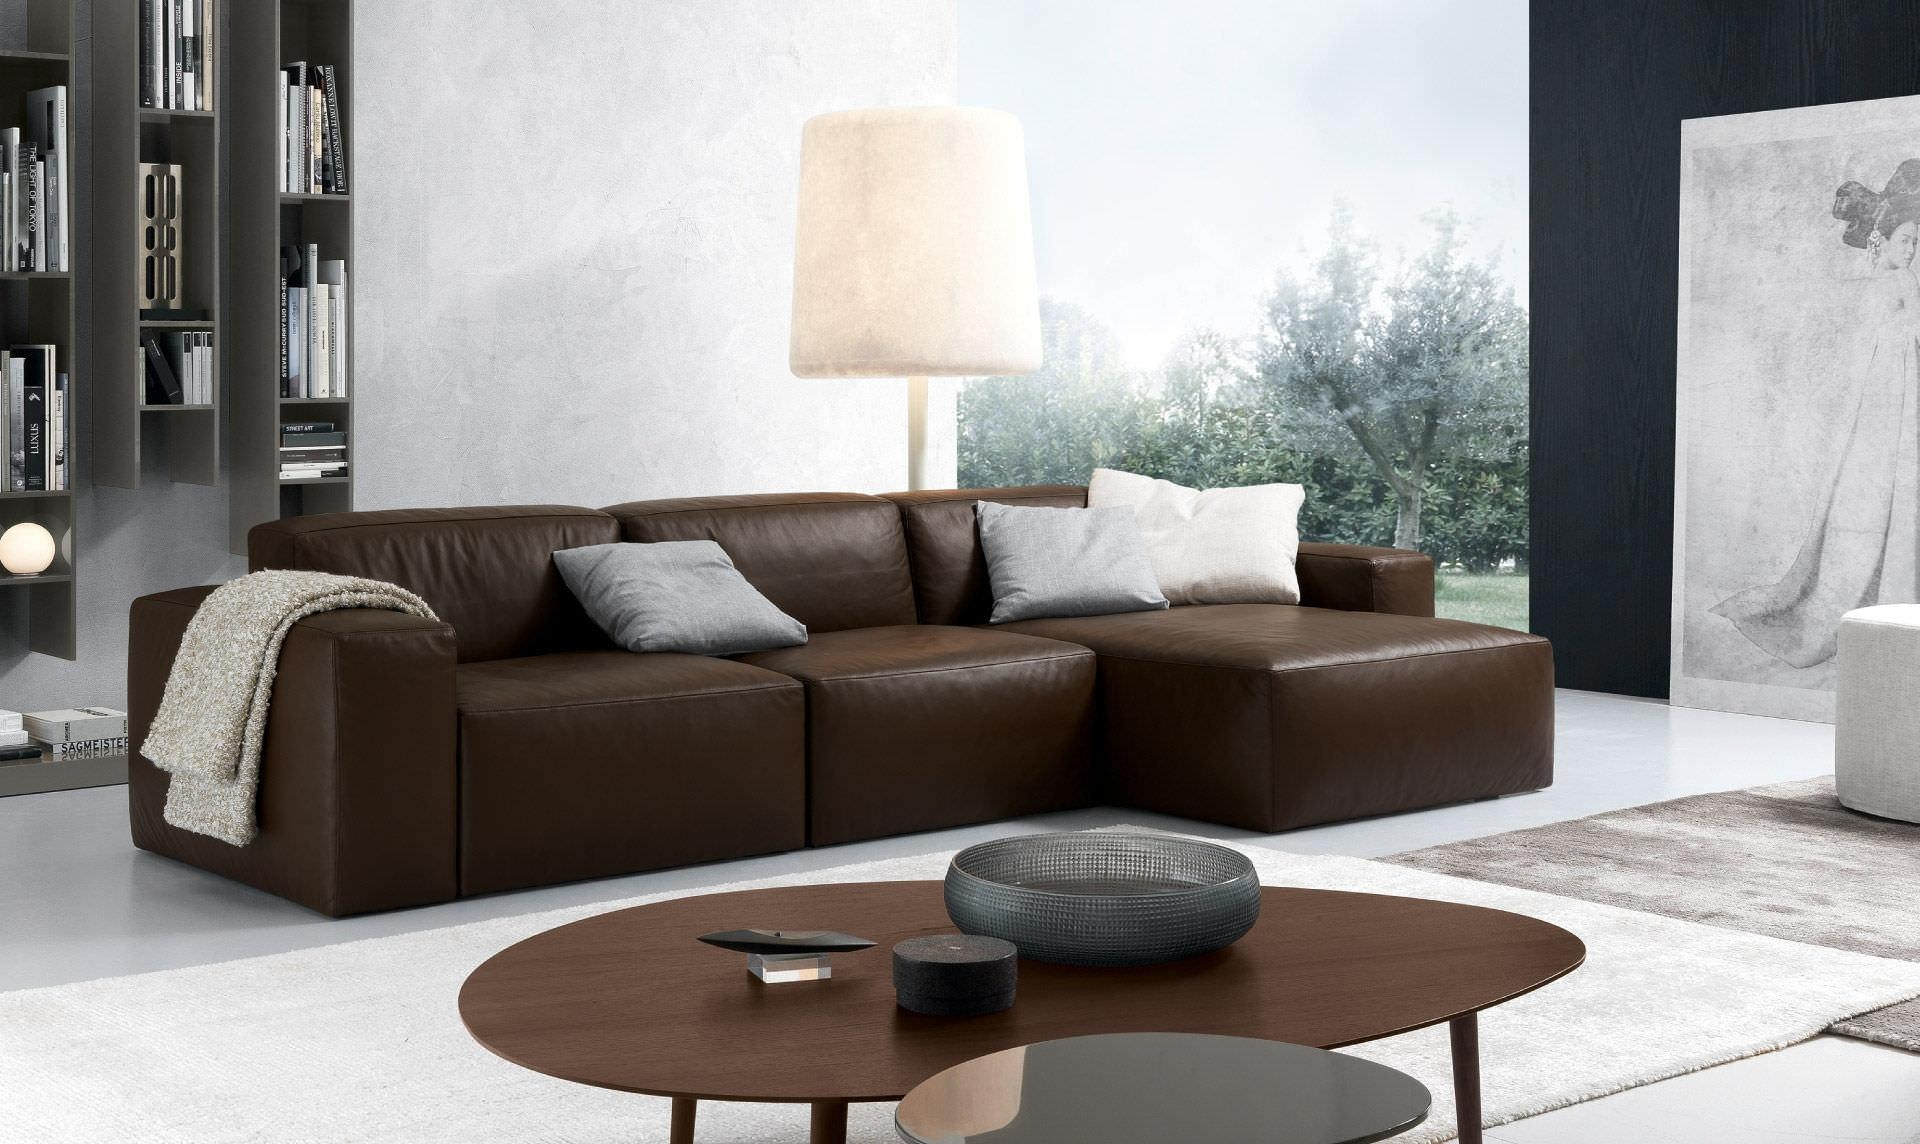 Corner Sofa / Contemporary / Leather / 3 Seater – Daniel With Regard To Contemporary Brown Leather Sofas (View 13 of 20)